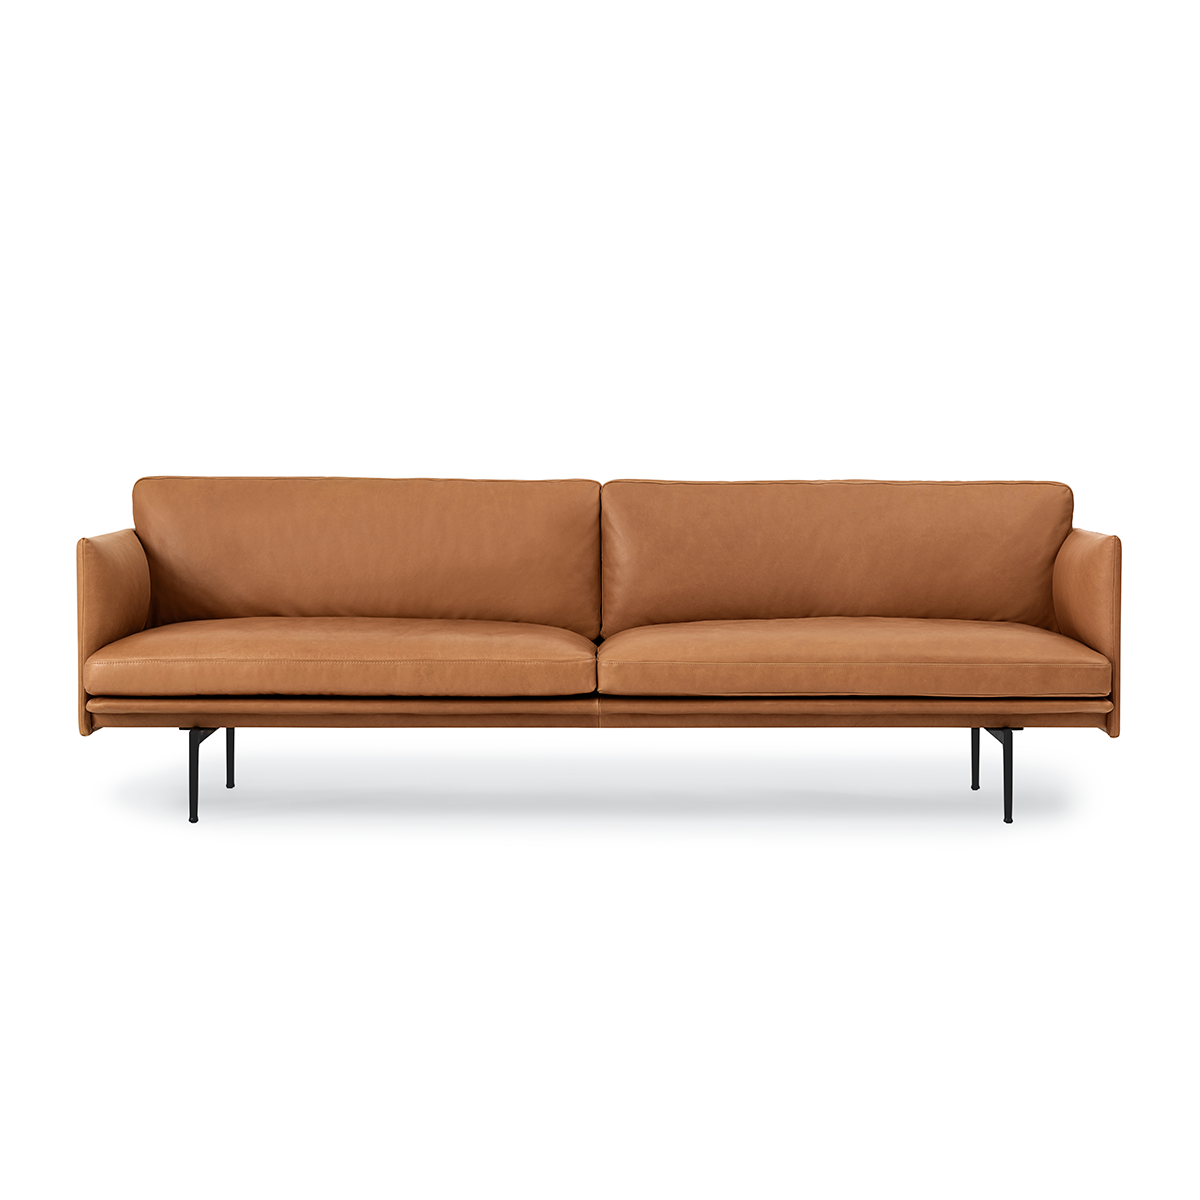 Muuto Outline 3-Seater Sofa in Leather 220cm 輪廓系列 三人沙發 皮革版